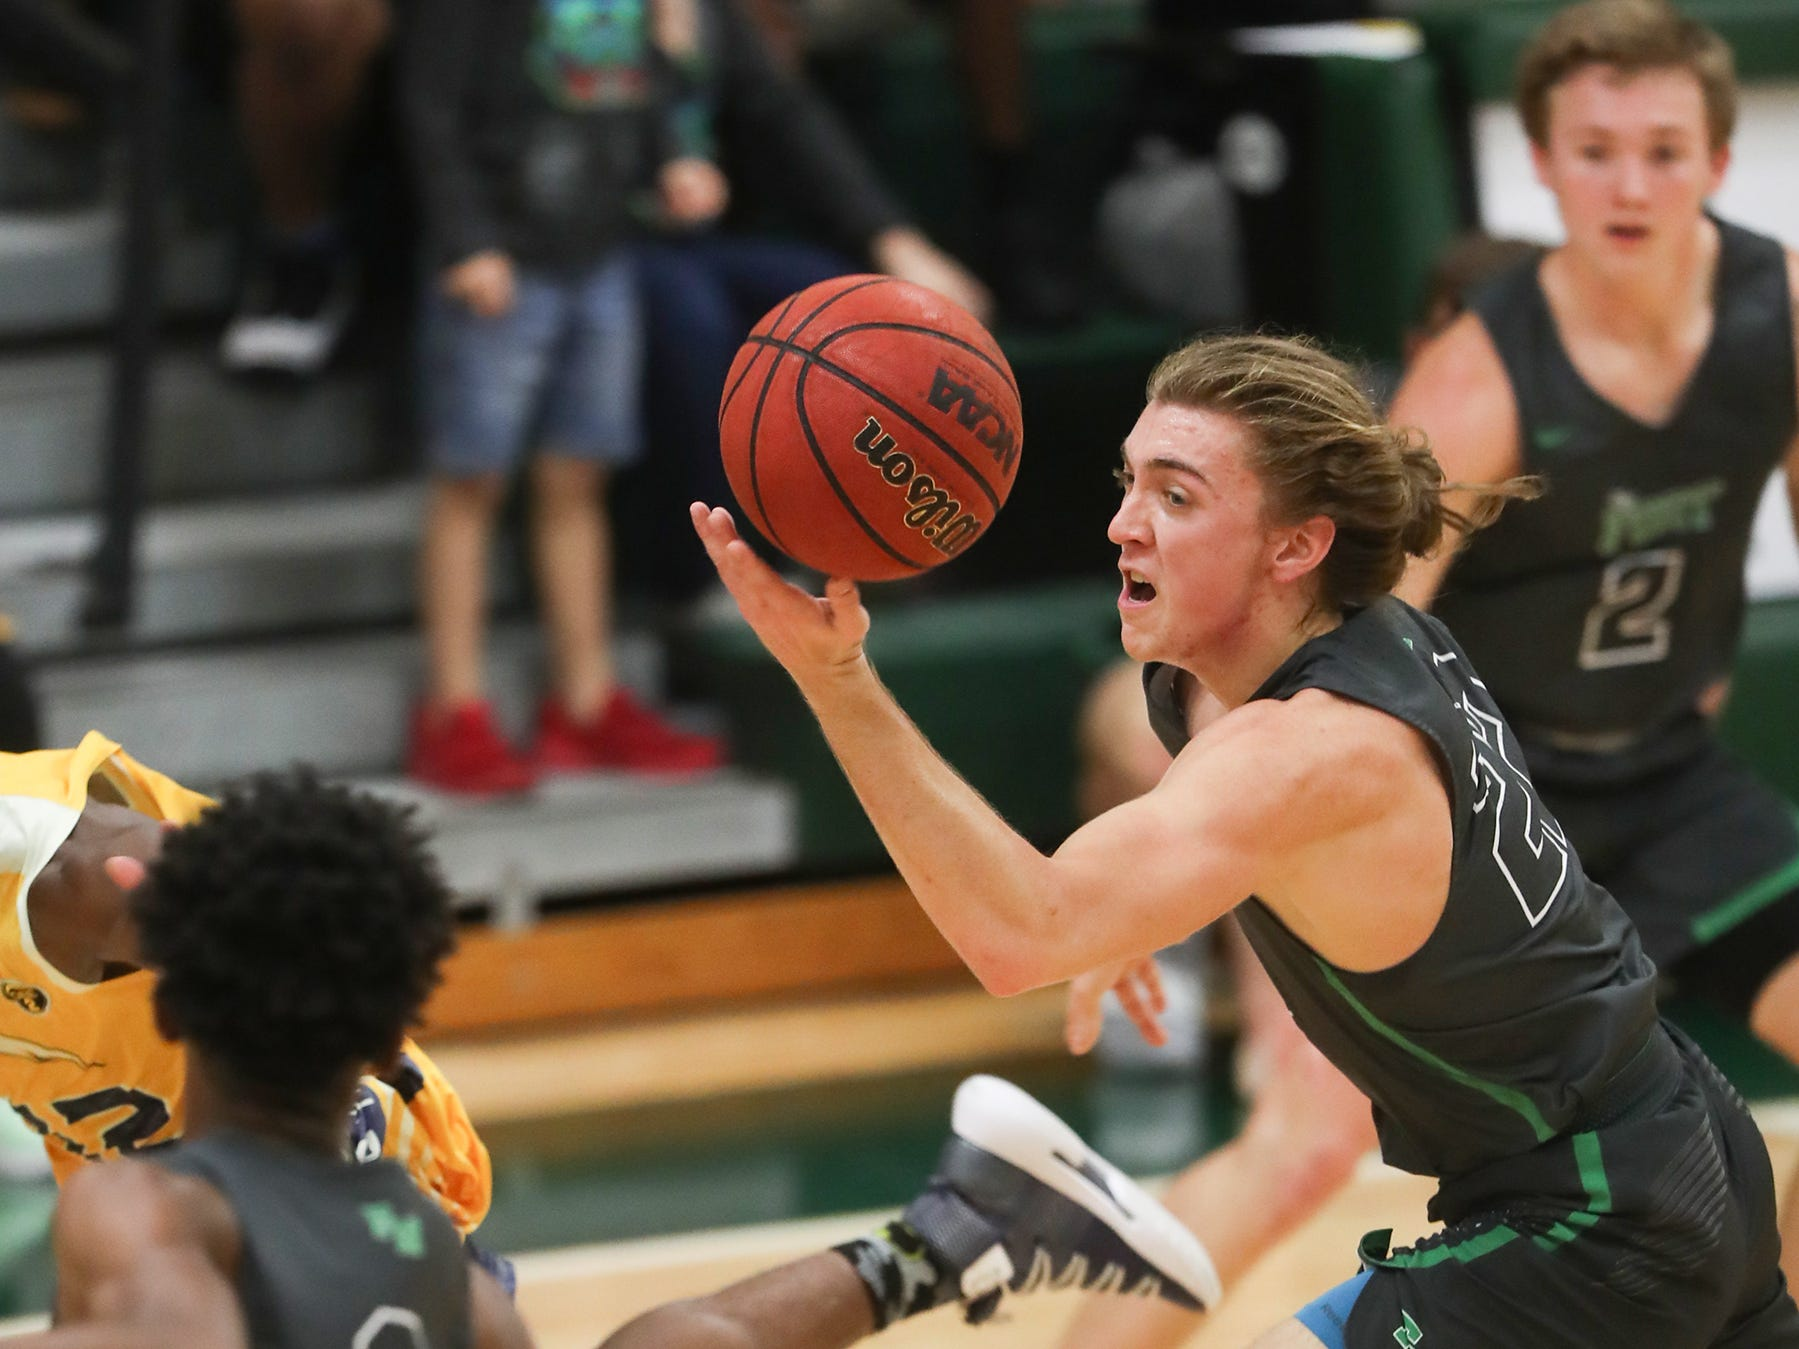 Fort Myers High School's Michael Roberts, right, drives to the basket against Lehigh on Friday in the Class 7A-11 championship game in Fort Myers. Fort Myers beat Lehigh 59-56.